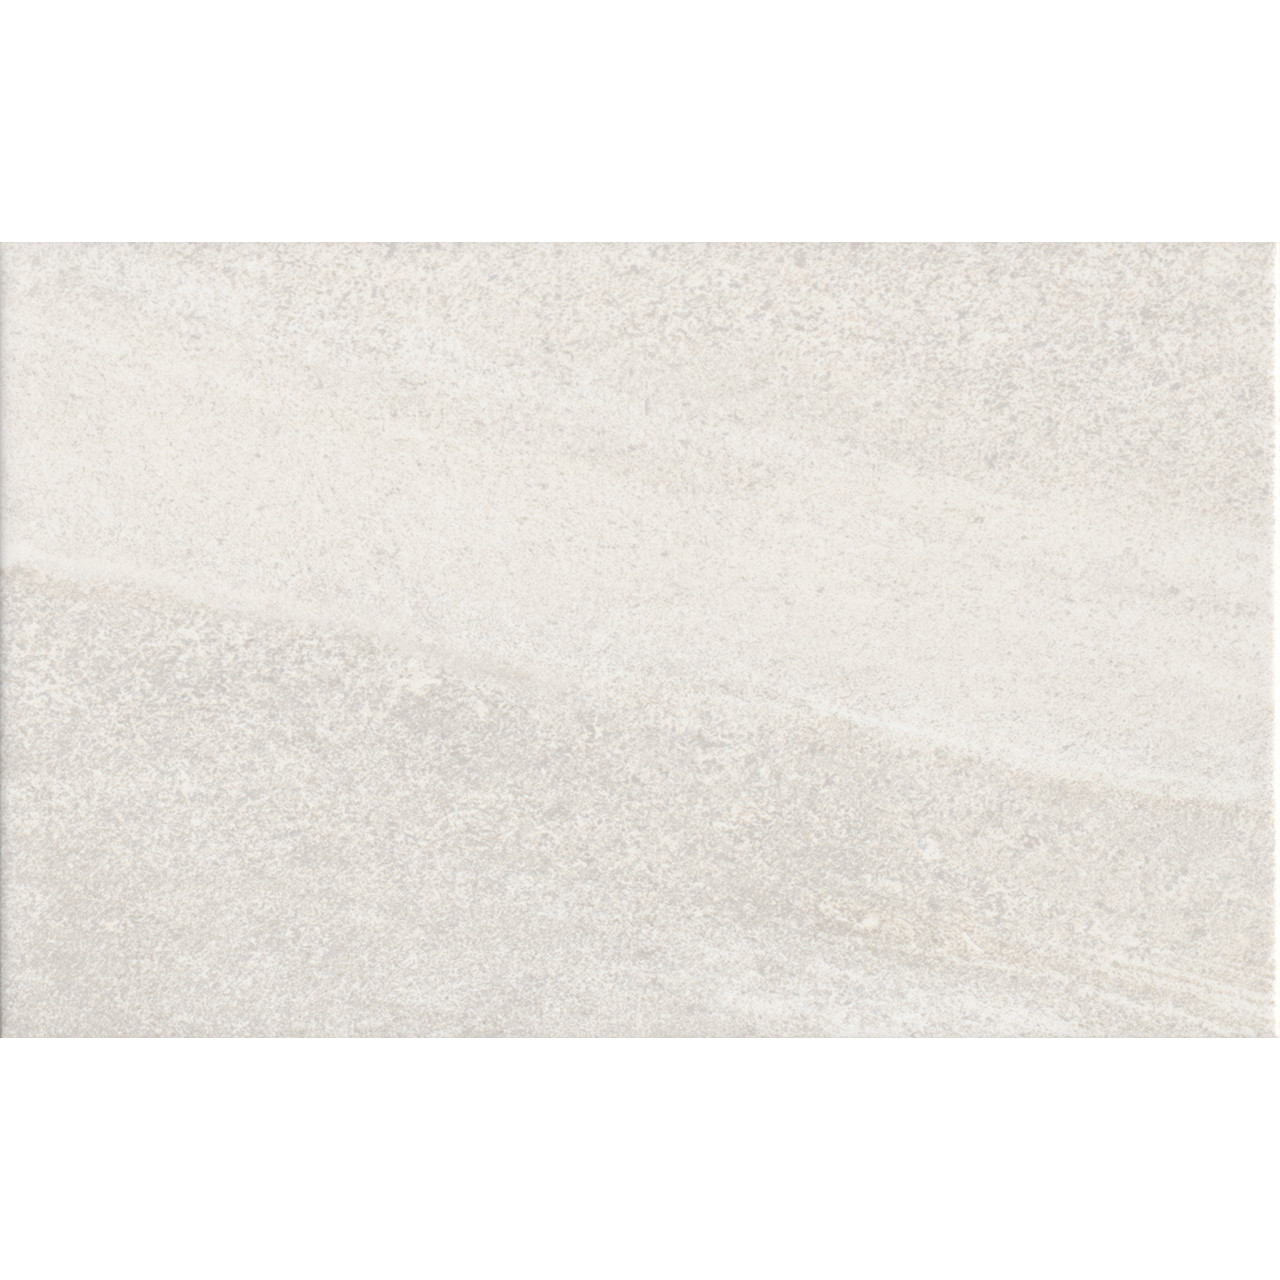 Fiji White 25x40 Ceramic Tile